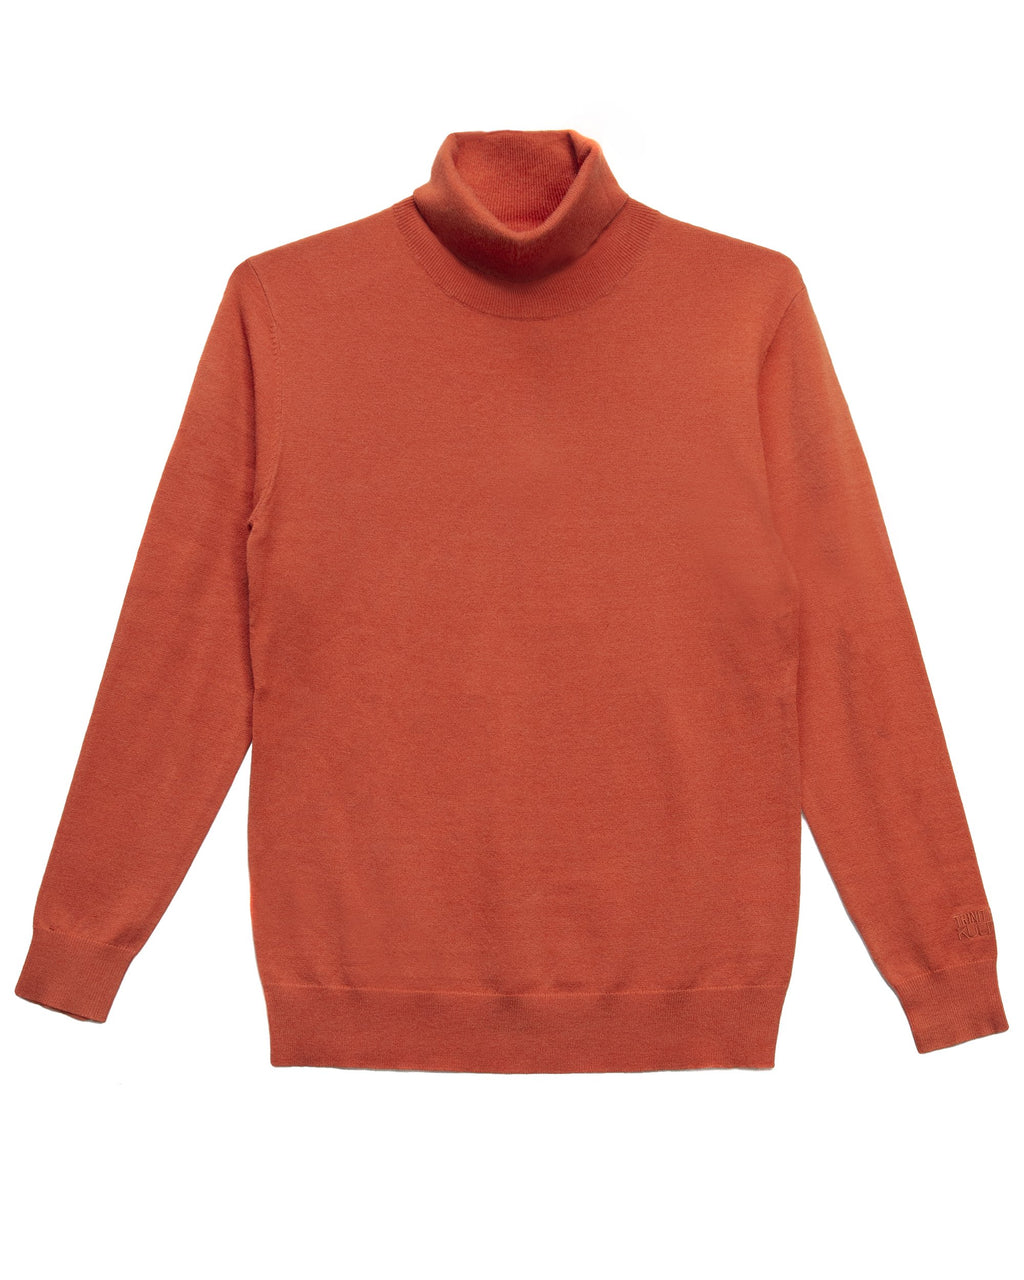 Trinity Kays Kulture Logo Turtleneck Sweater - Orange